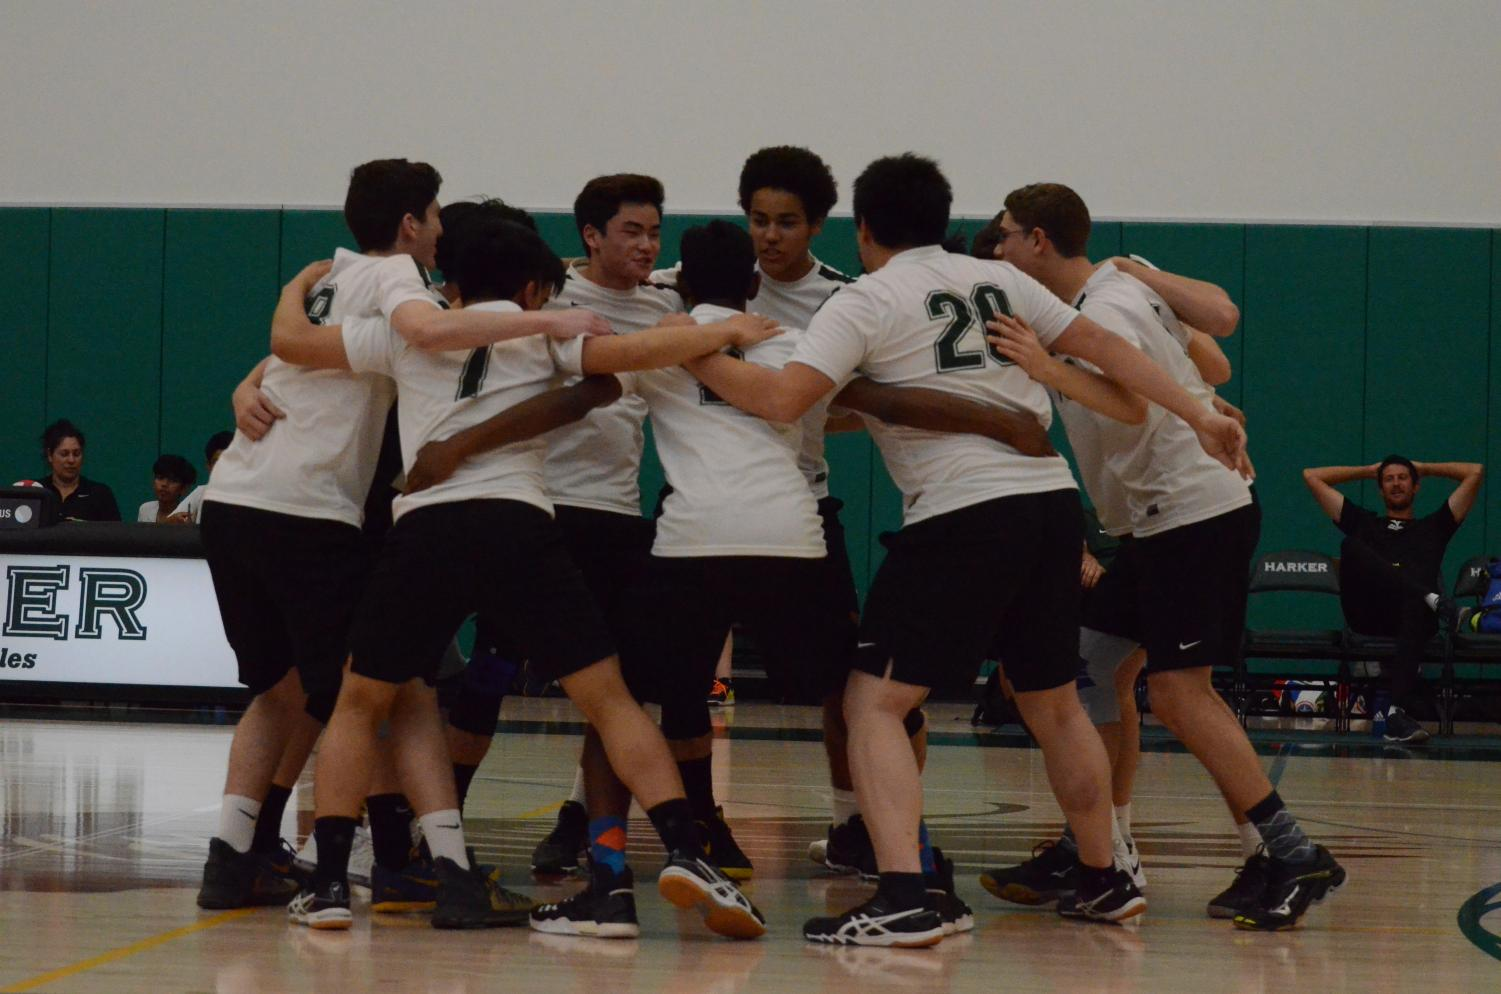 Between sets, the varsity boys volleyball team cheers within their huddle. They beat Cupertino High School in three sets.